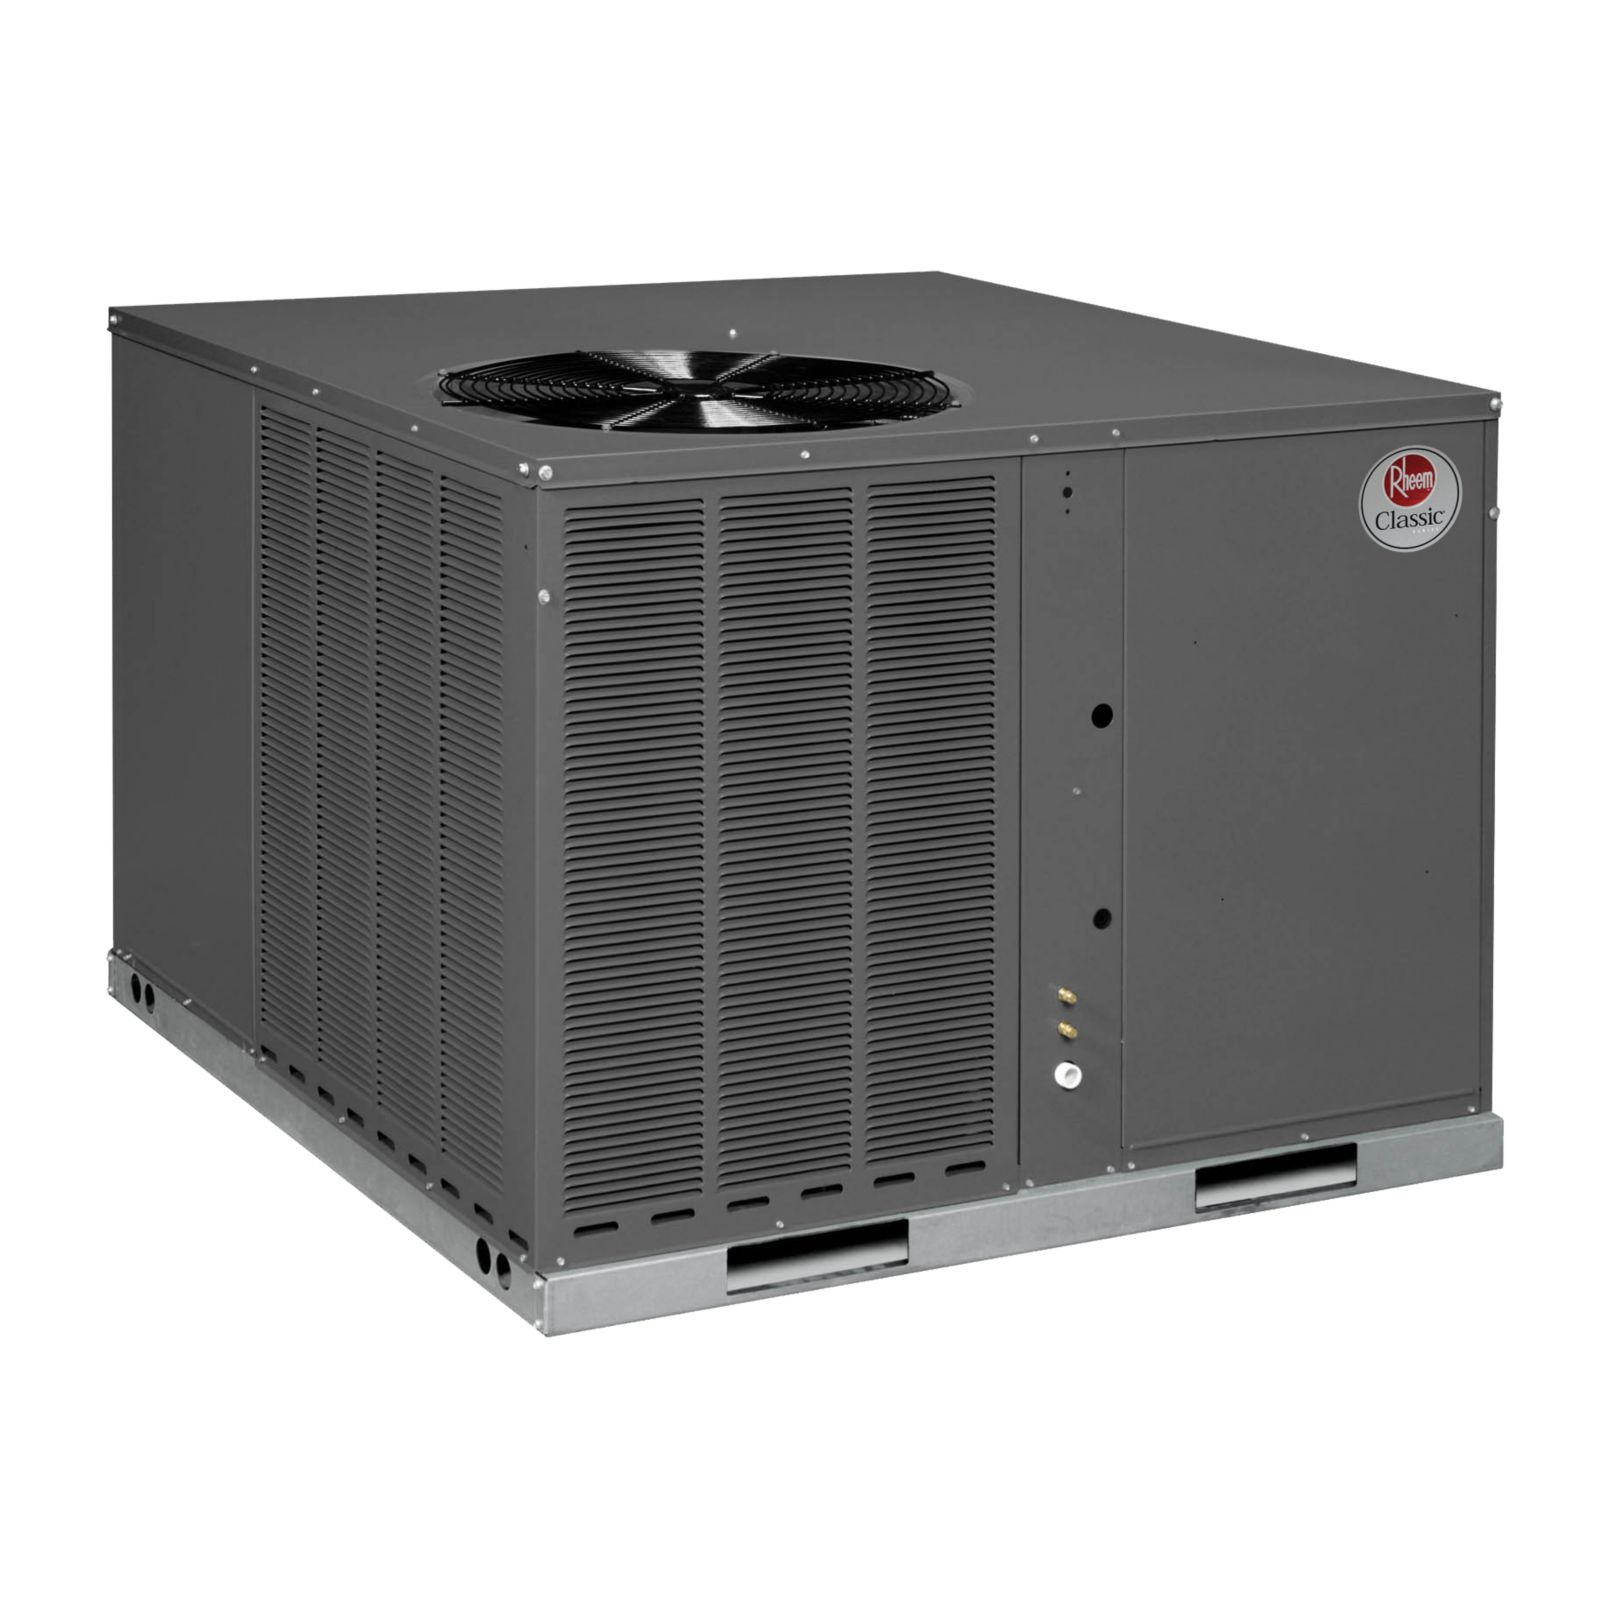 Rheem RQPL-B048JK000 - 4 Ton, 14 SEER, R410A, Packaged Heat Pump, 208-230 V, 1 Ph, 60 Hz